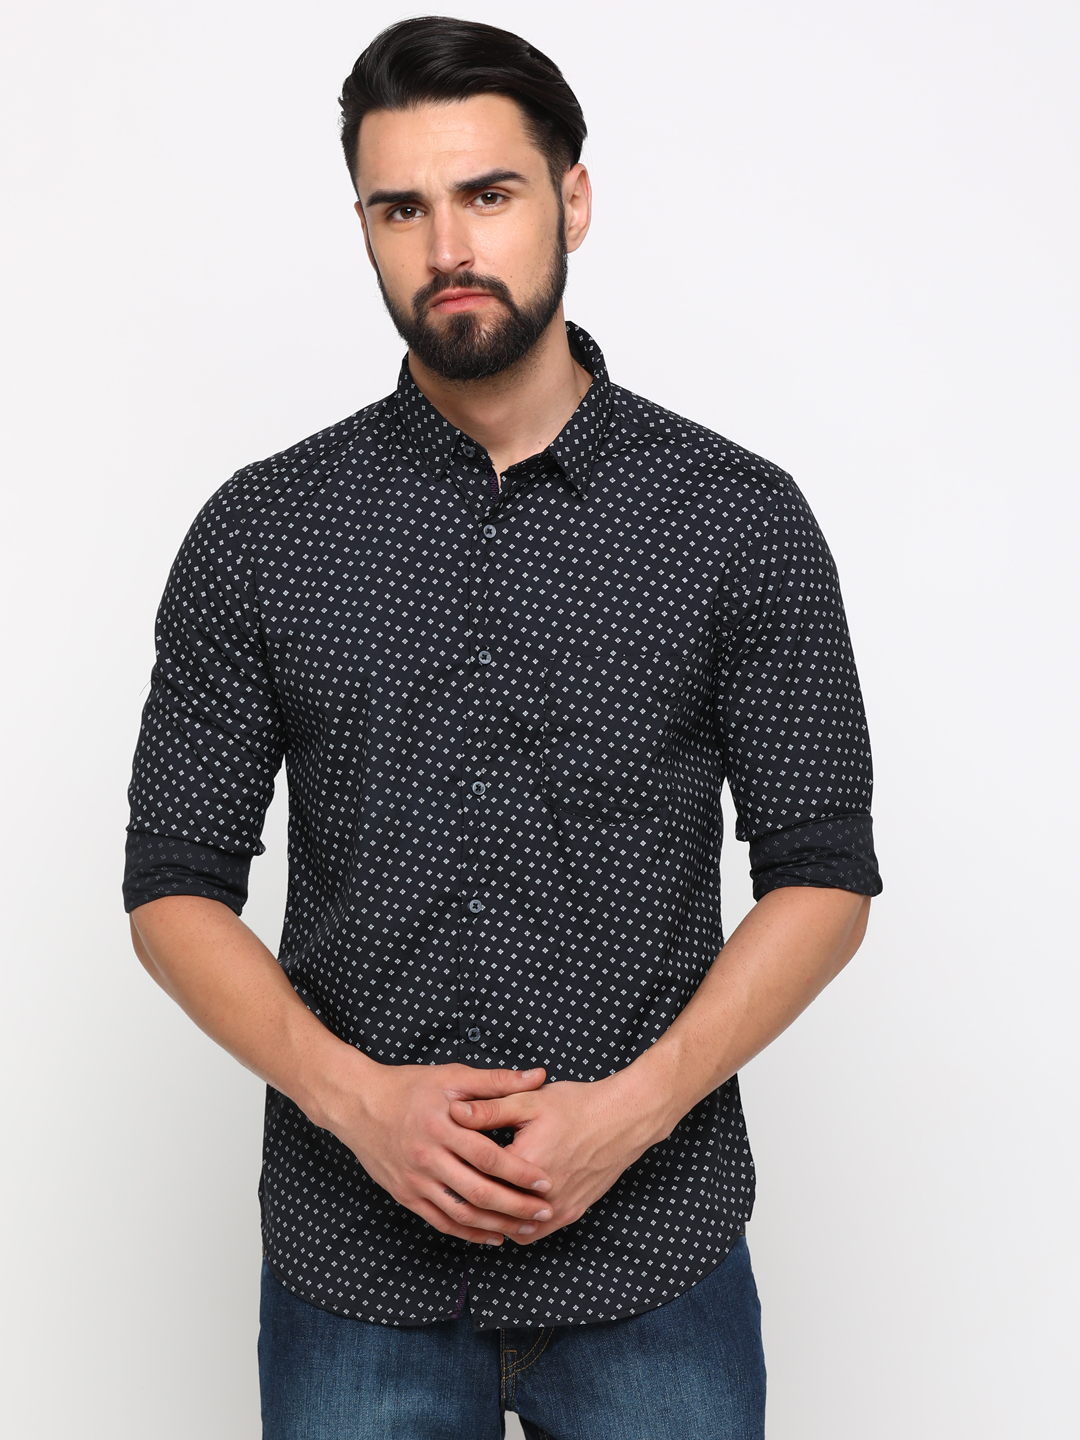 With | With Men's NavyBlue Cotton Printed SlimFit Shirt